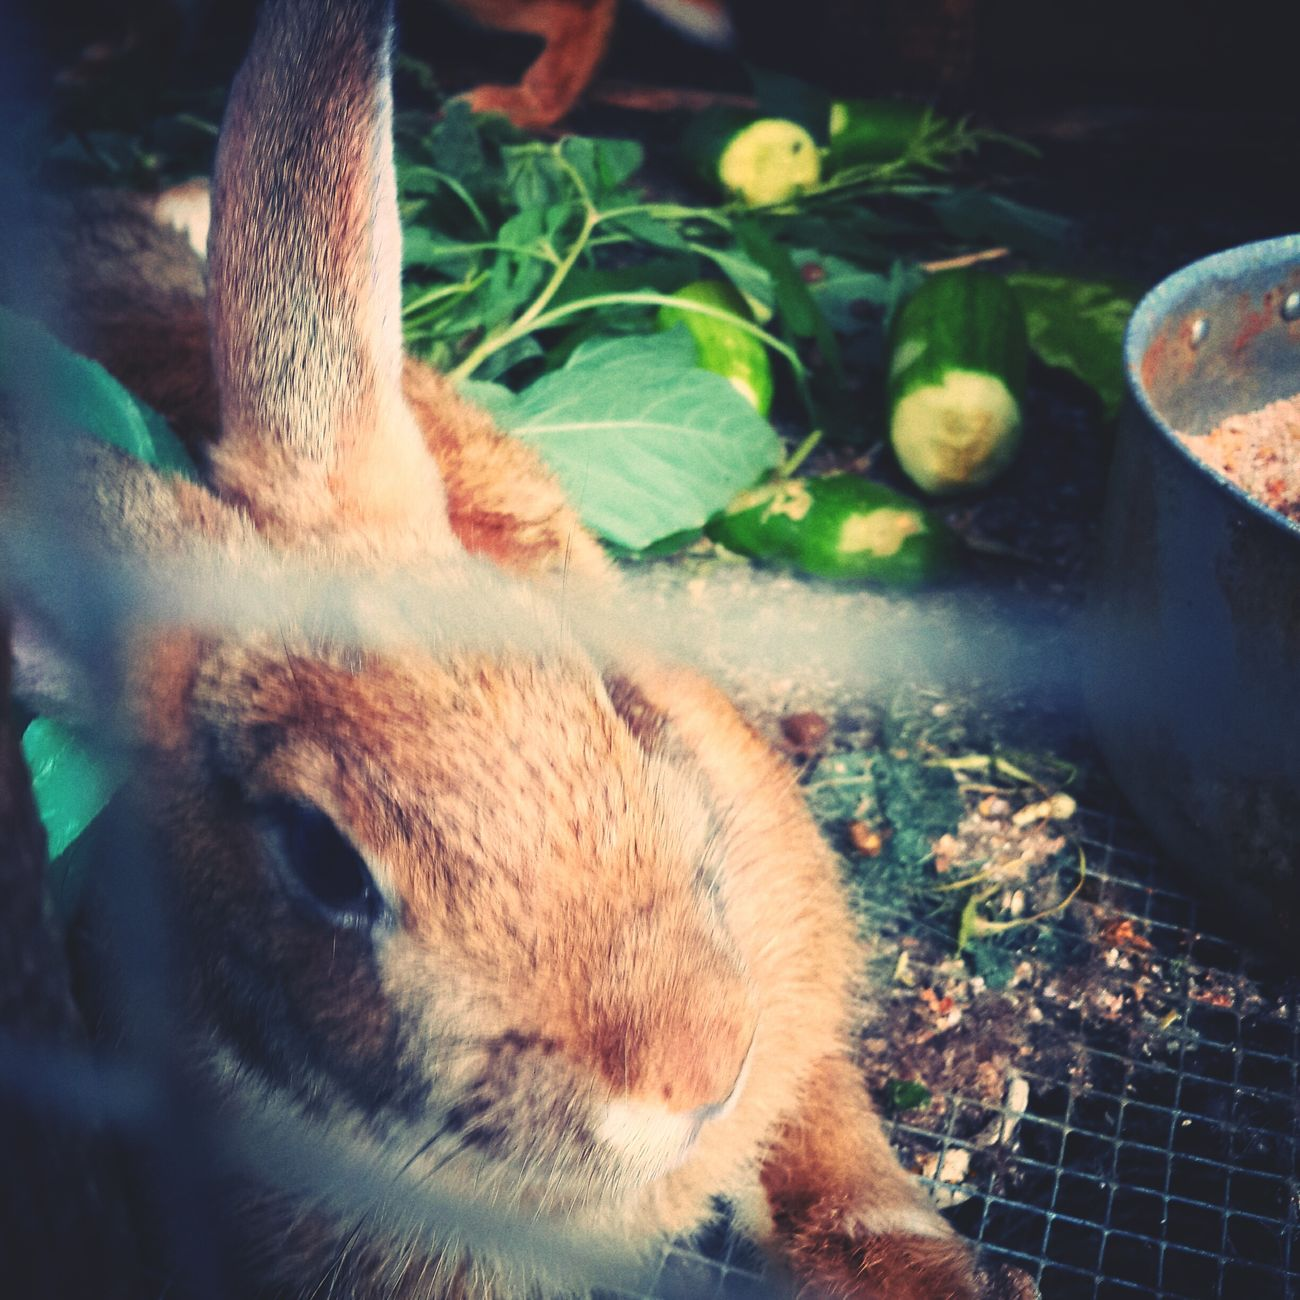 Rabbit Mr Rabbit Goodmorning Have A Nice Day♥ :)